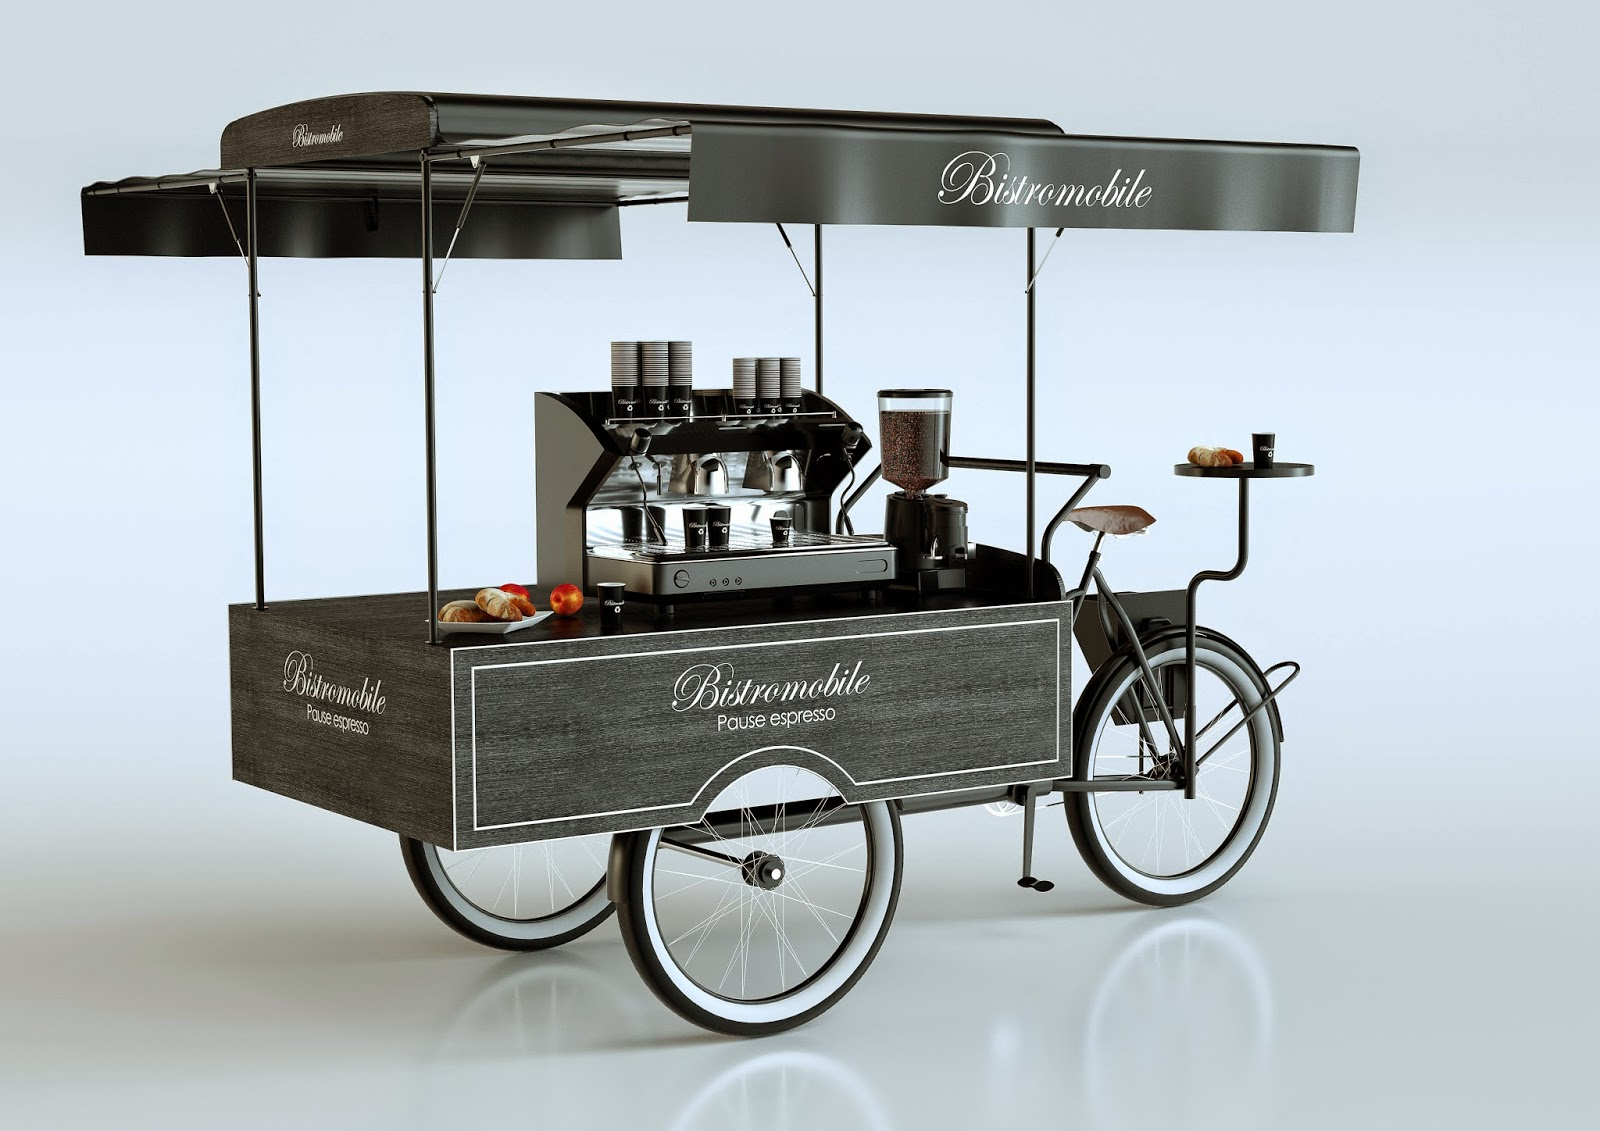 barista kaffeefahrrad coffeebike mieten messe event k ln bonn d sseldorf essen frankfurt. Black Bedroom Furniture Sets. Home Design Ideas